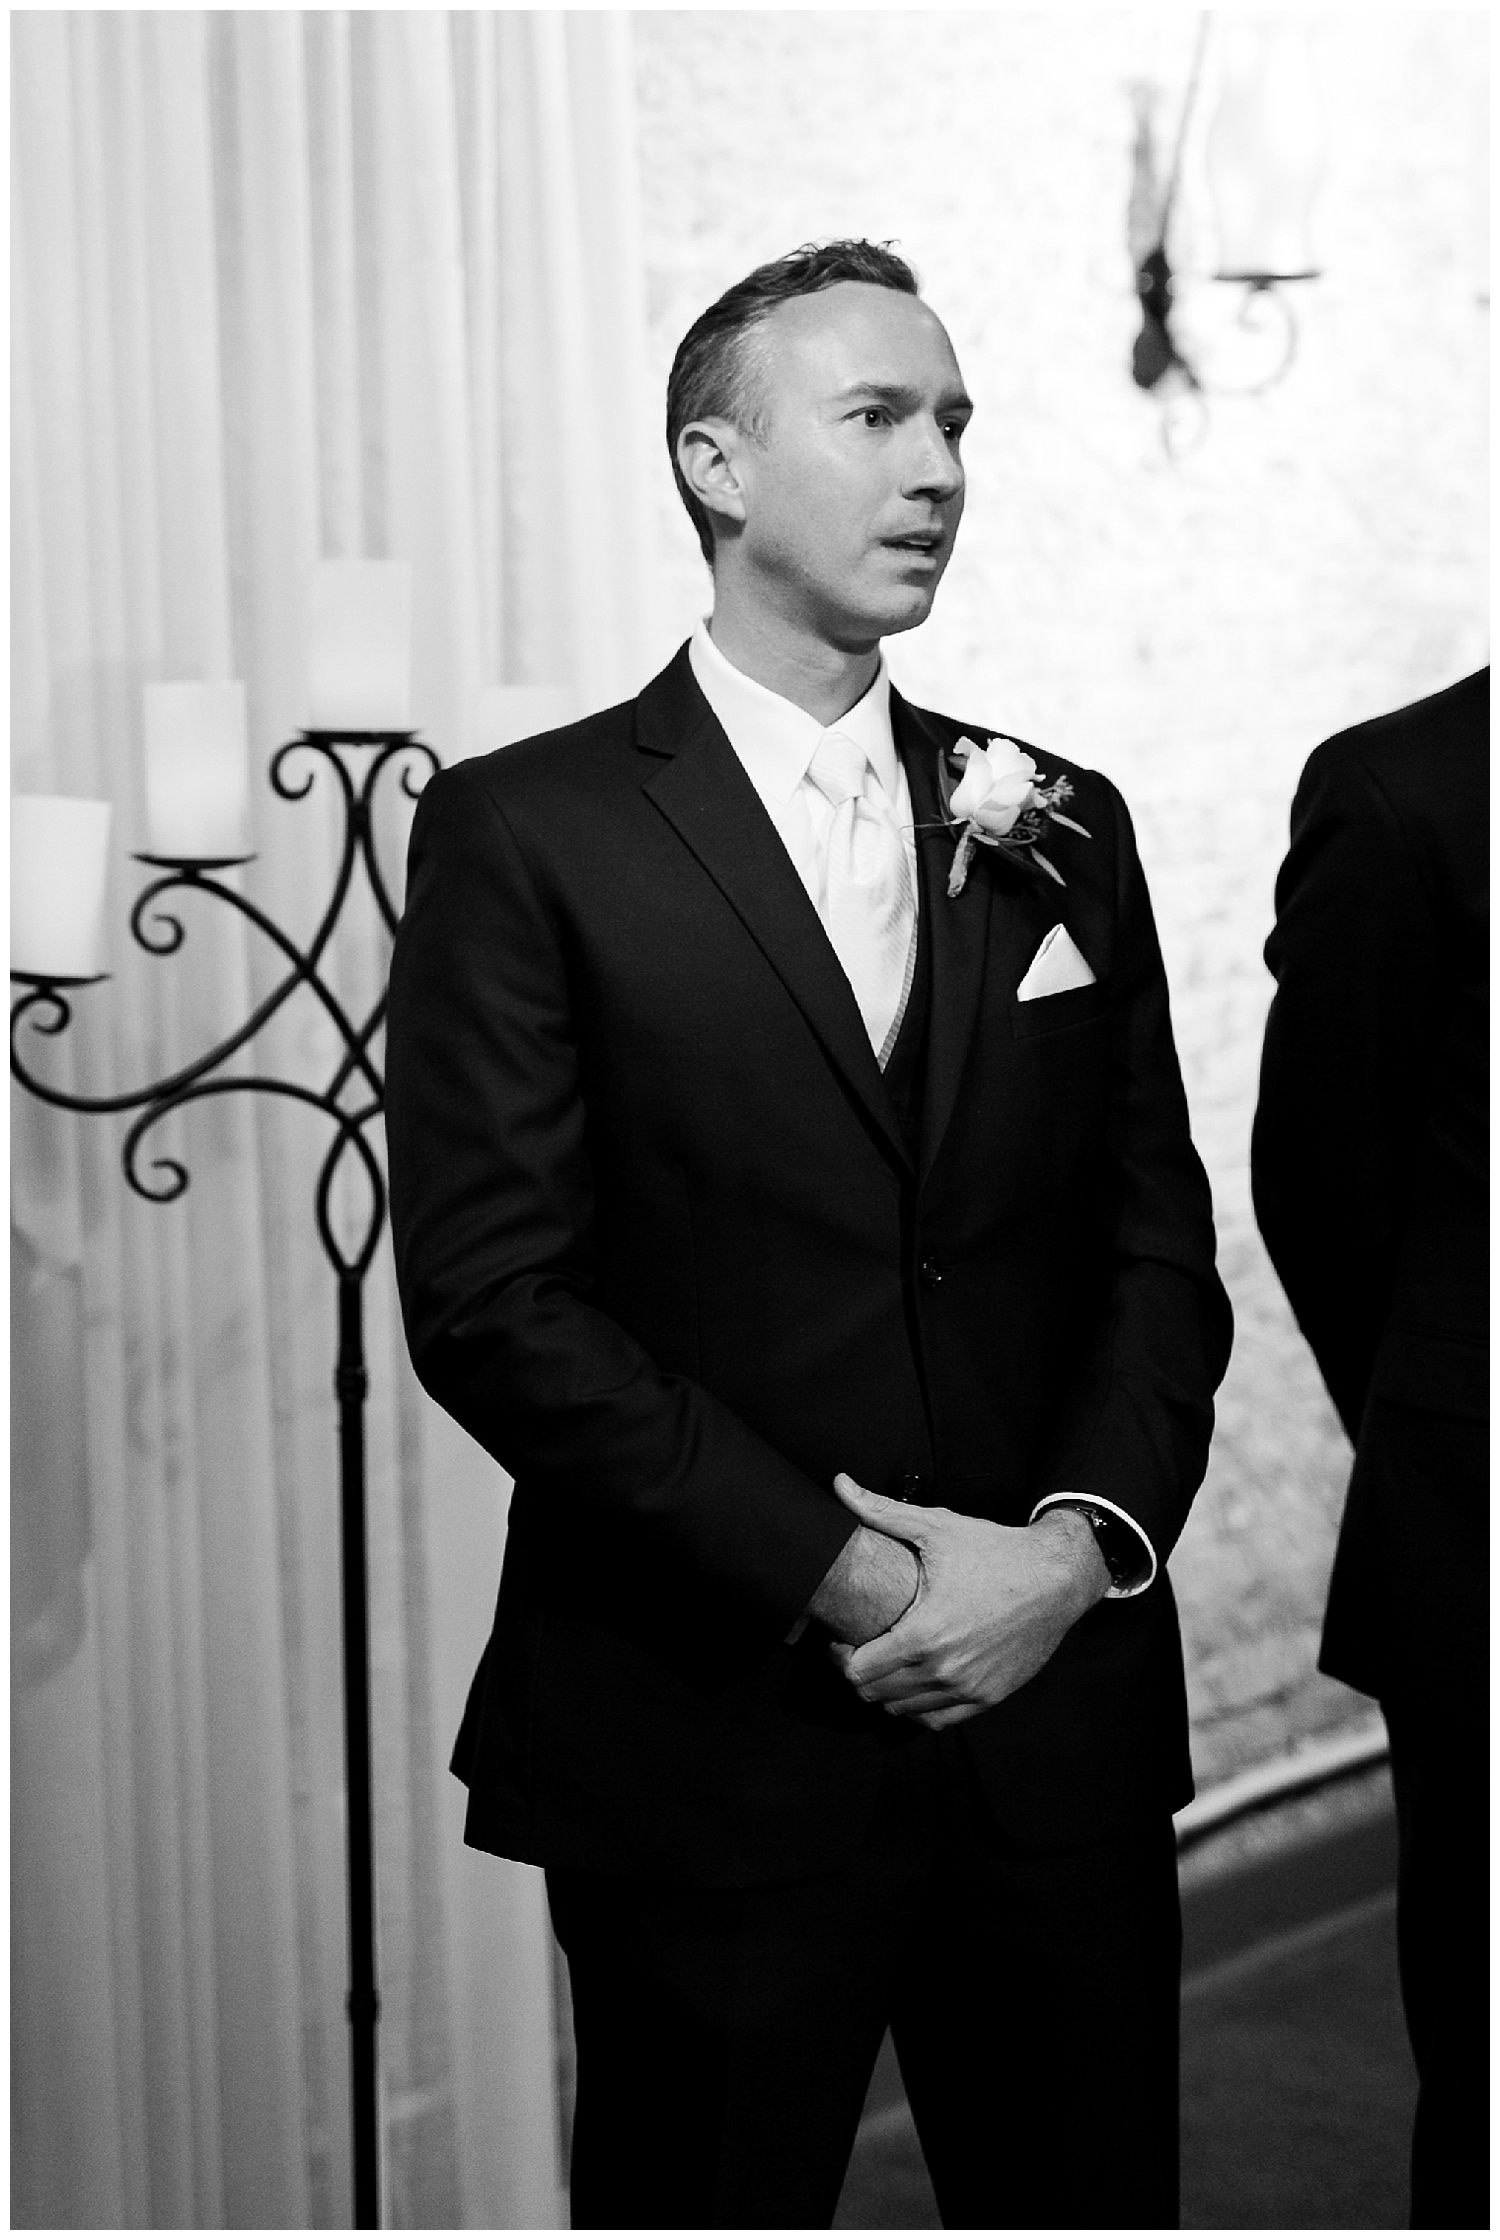 When he sees his bride walking towards him!!